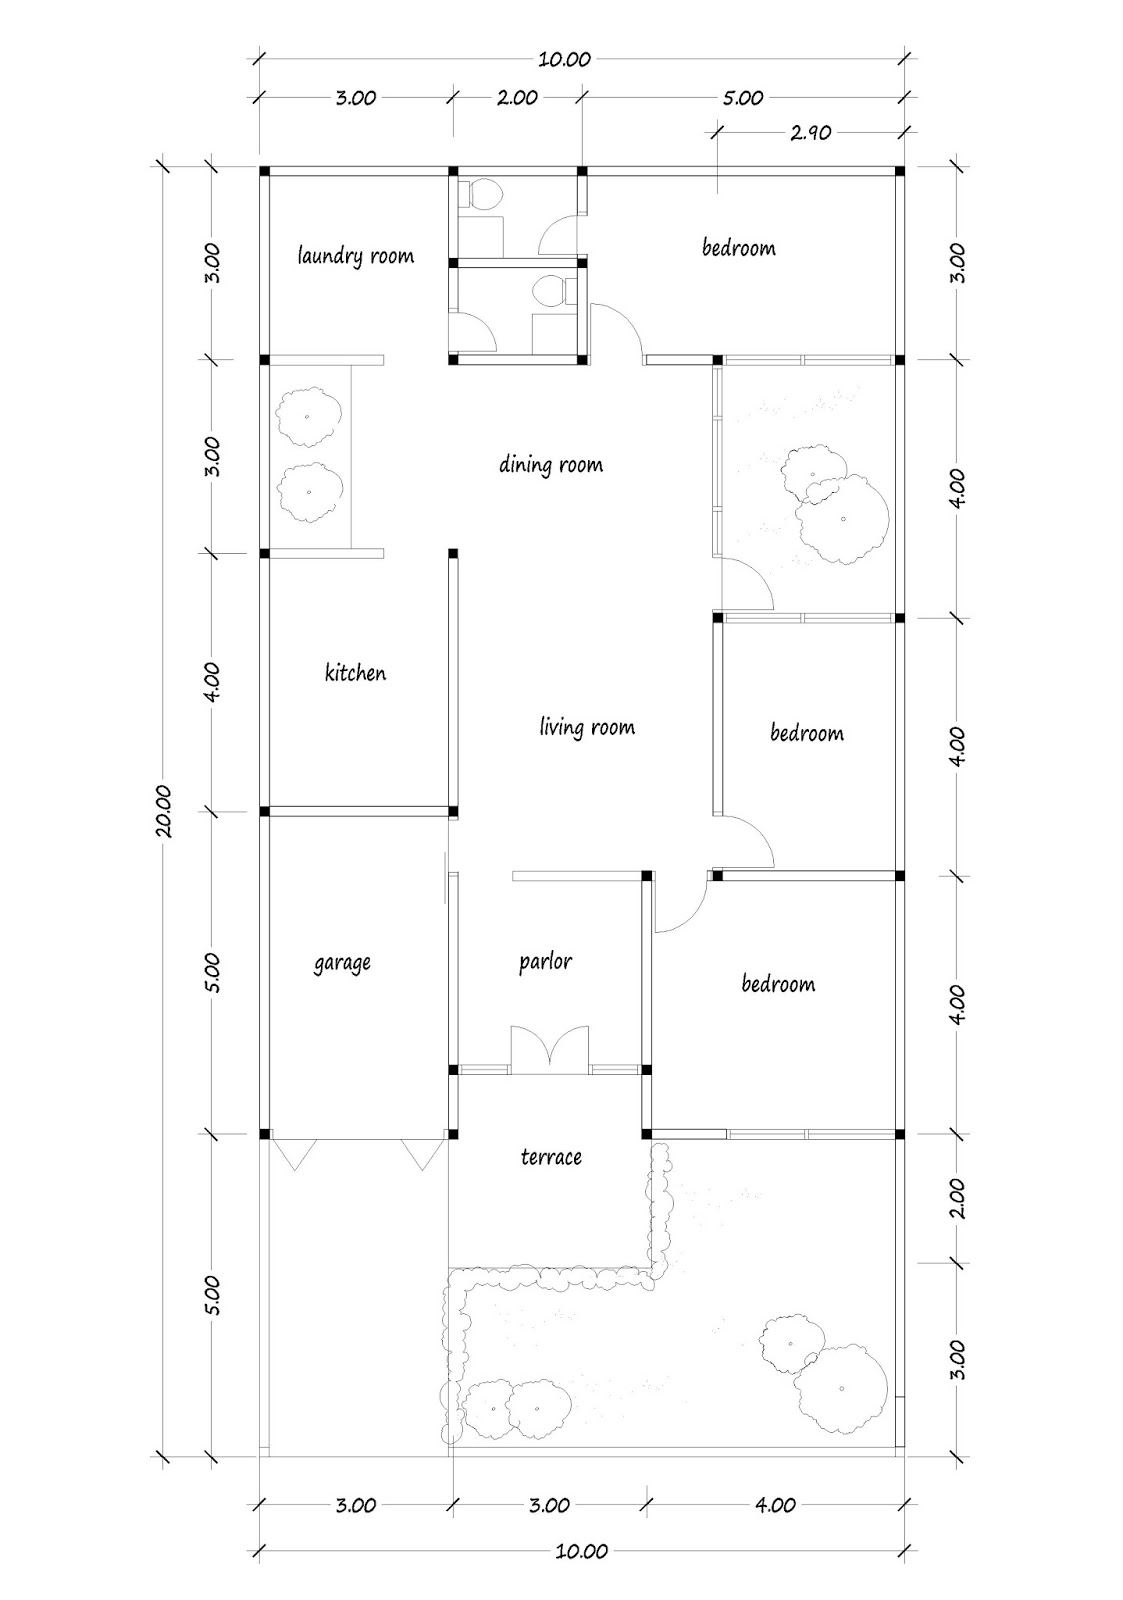 House plans for you plans image design and about house for 10x20 tiny house floor plans